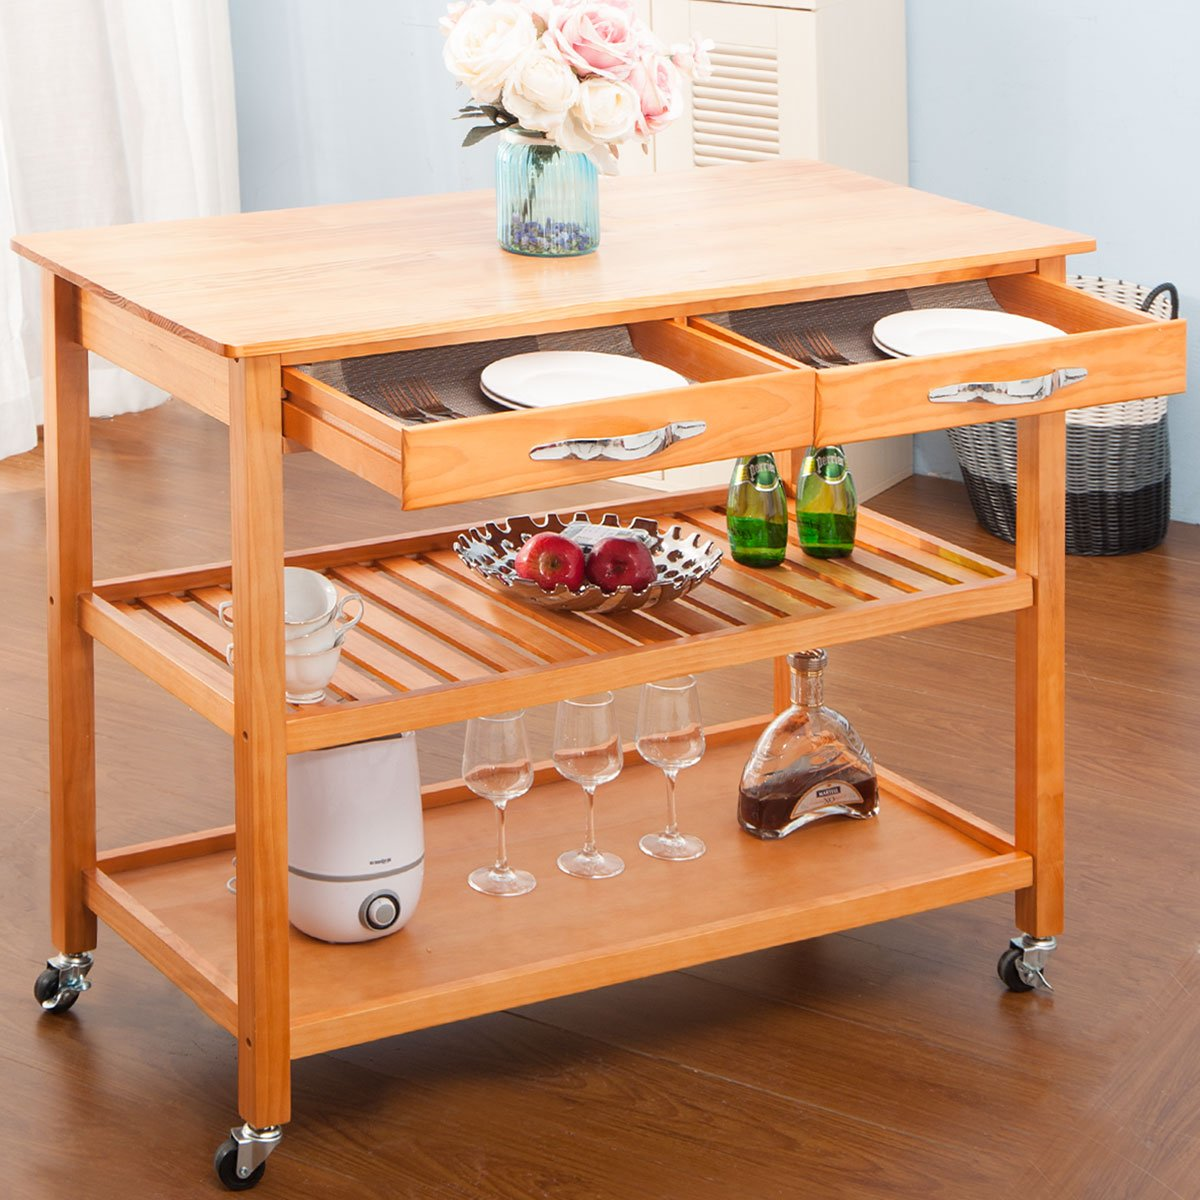 Harper&Bright Designs with Drawers & Shelves (Walnut) Kitchen Dining Trolley Cart by Harper&Bright Designs (Image #2)